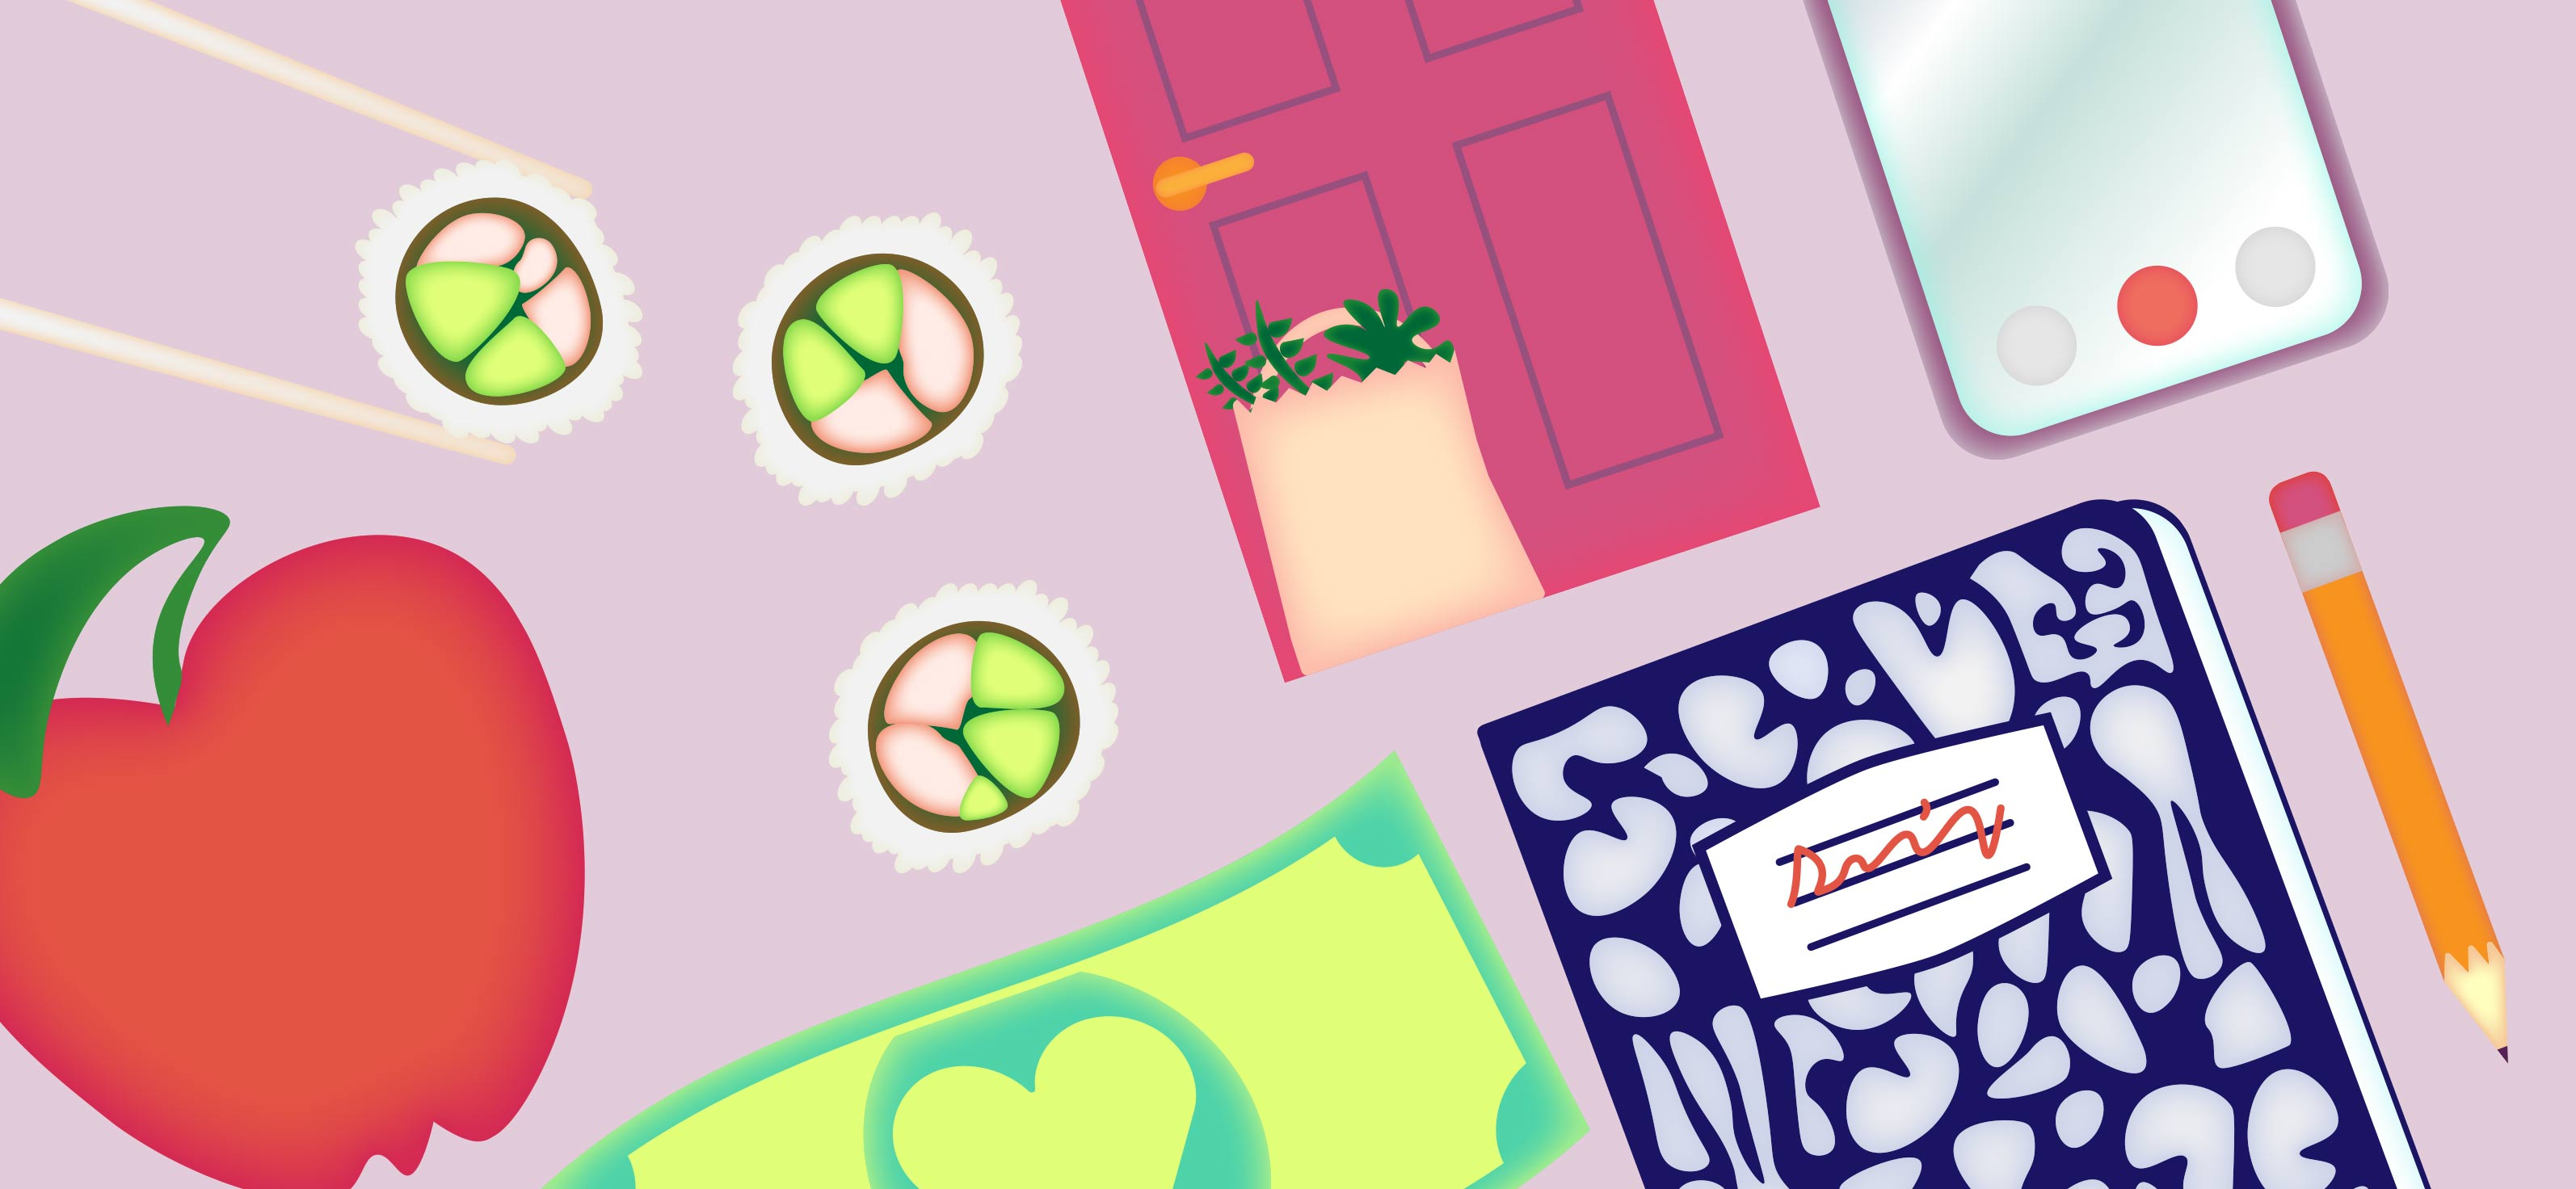 colorful image of sushi, apple, groceries left by neighbor's door